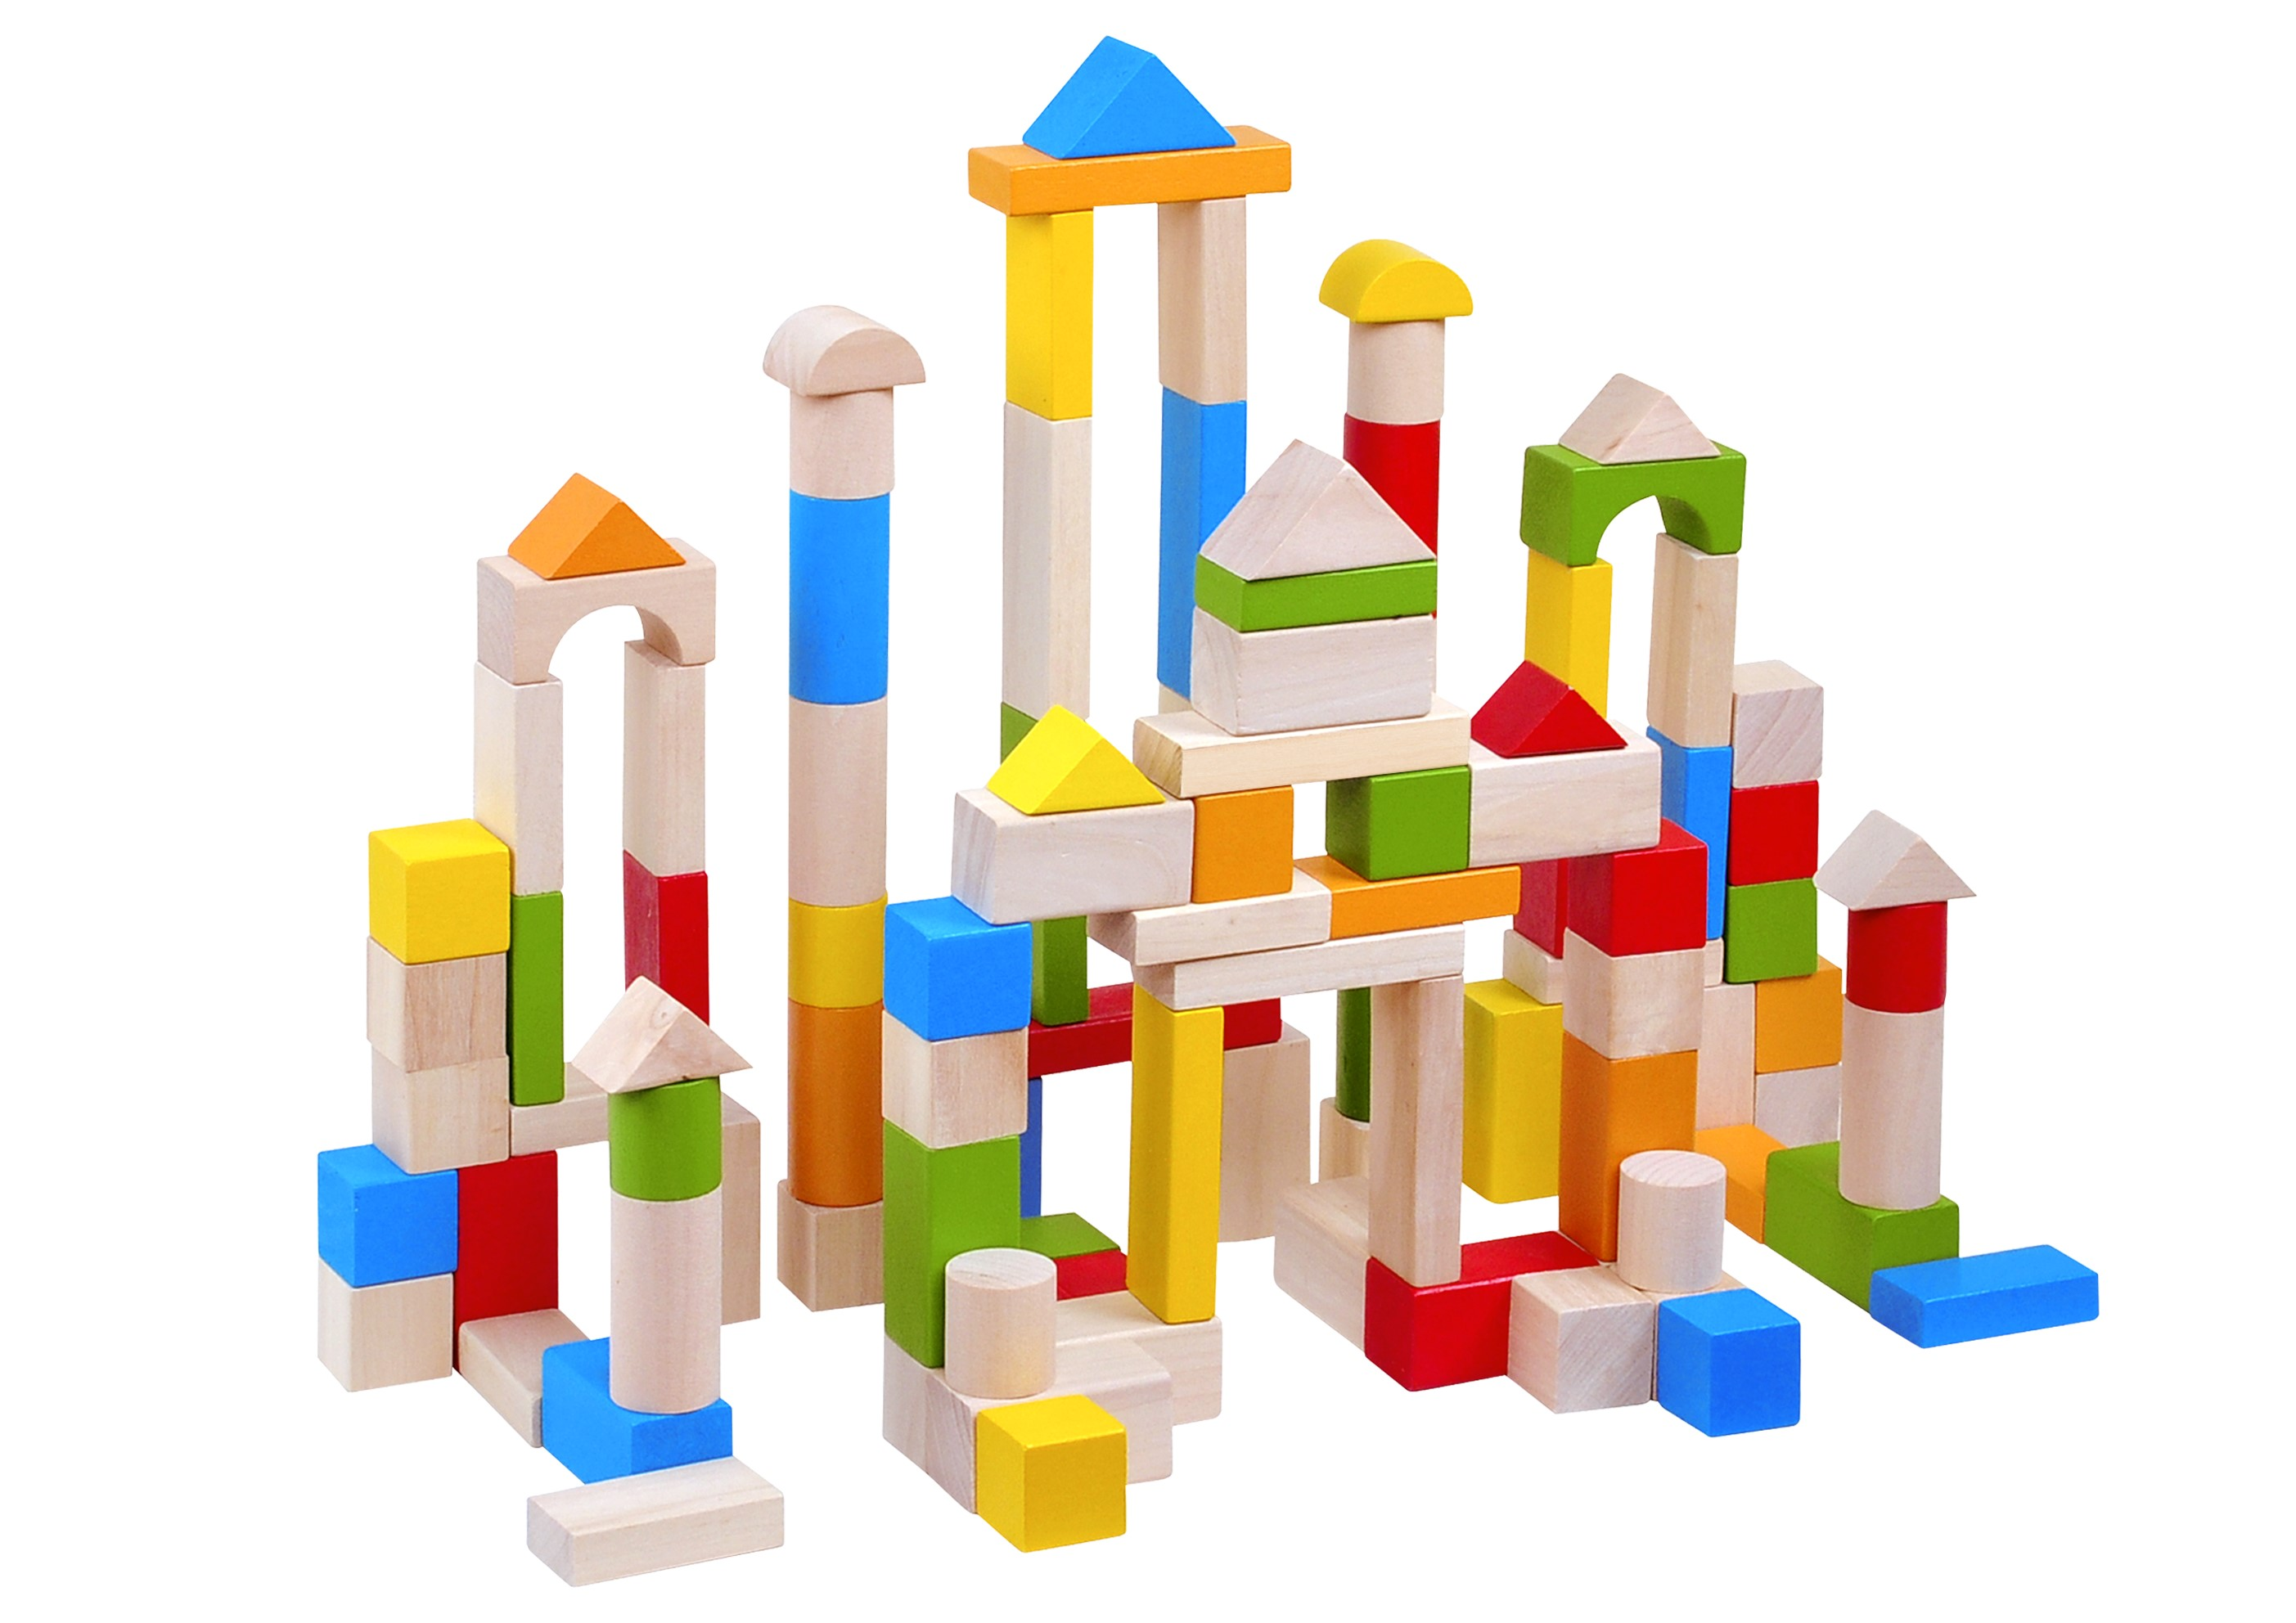 Toysters 100 Piece Wooden Colorful Classic Building Blocks Bpa Free Wood Block Set Game For Toddlers Interactive Stem Educational Toy Great For